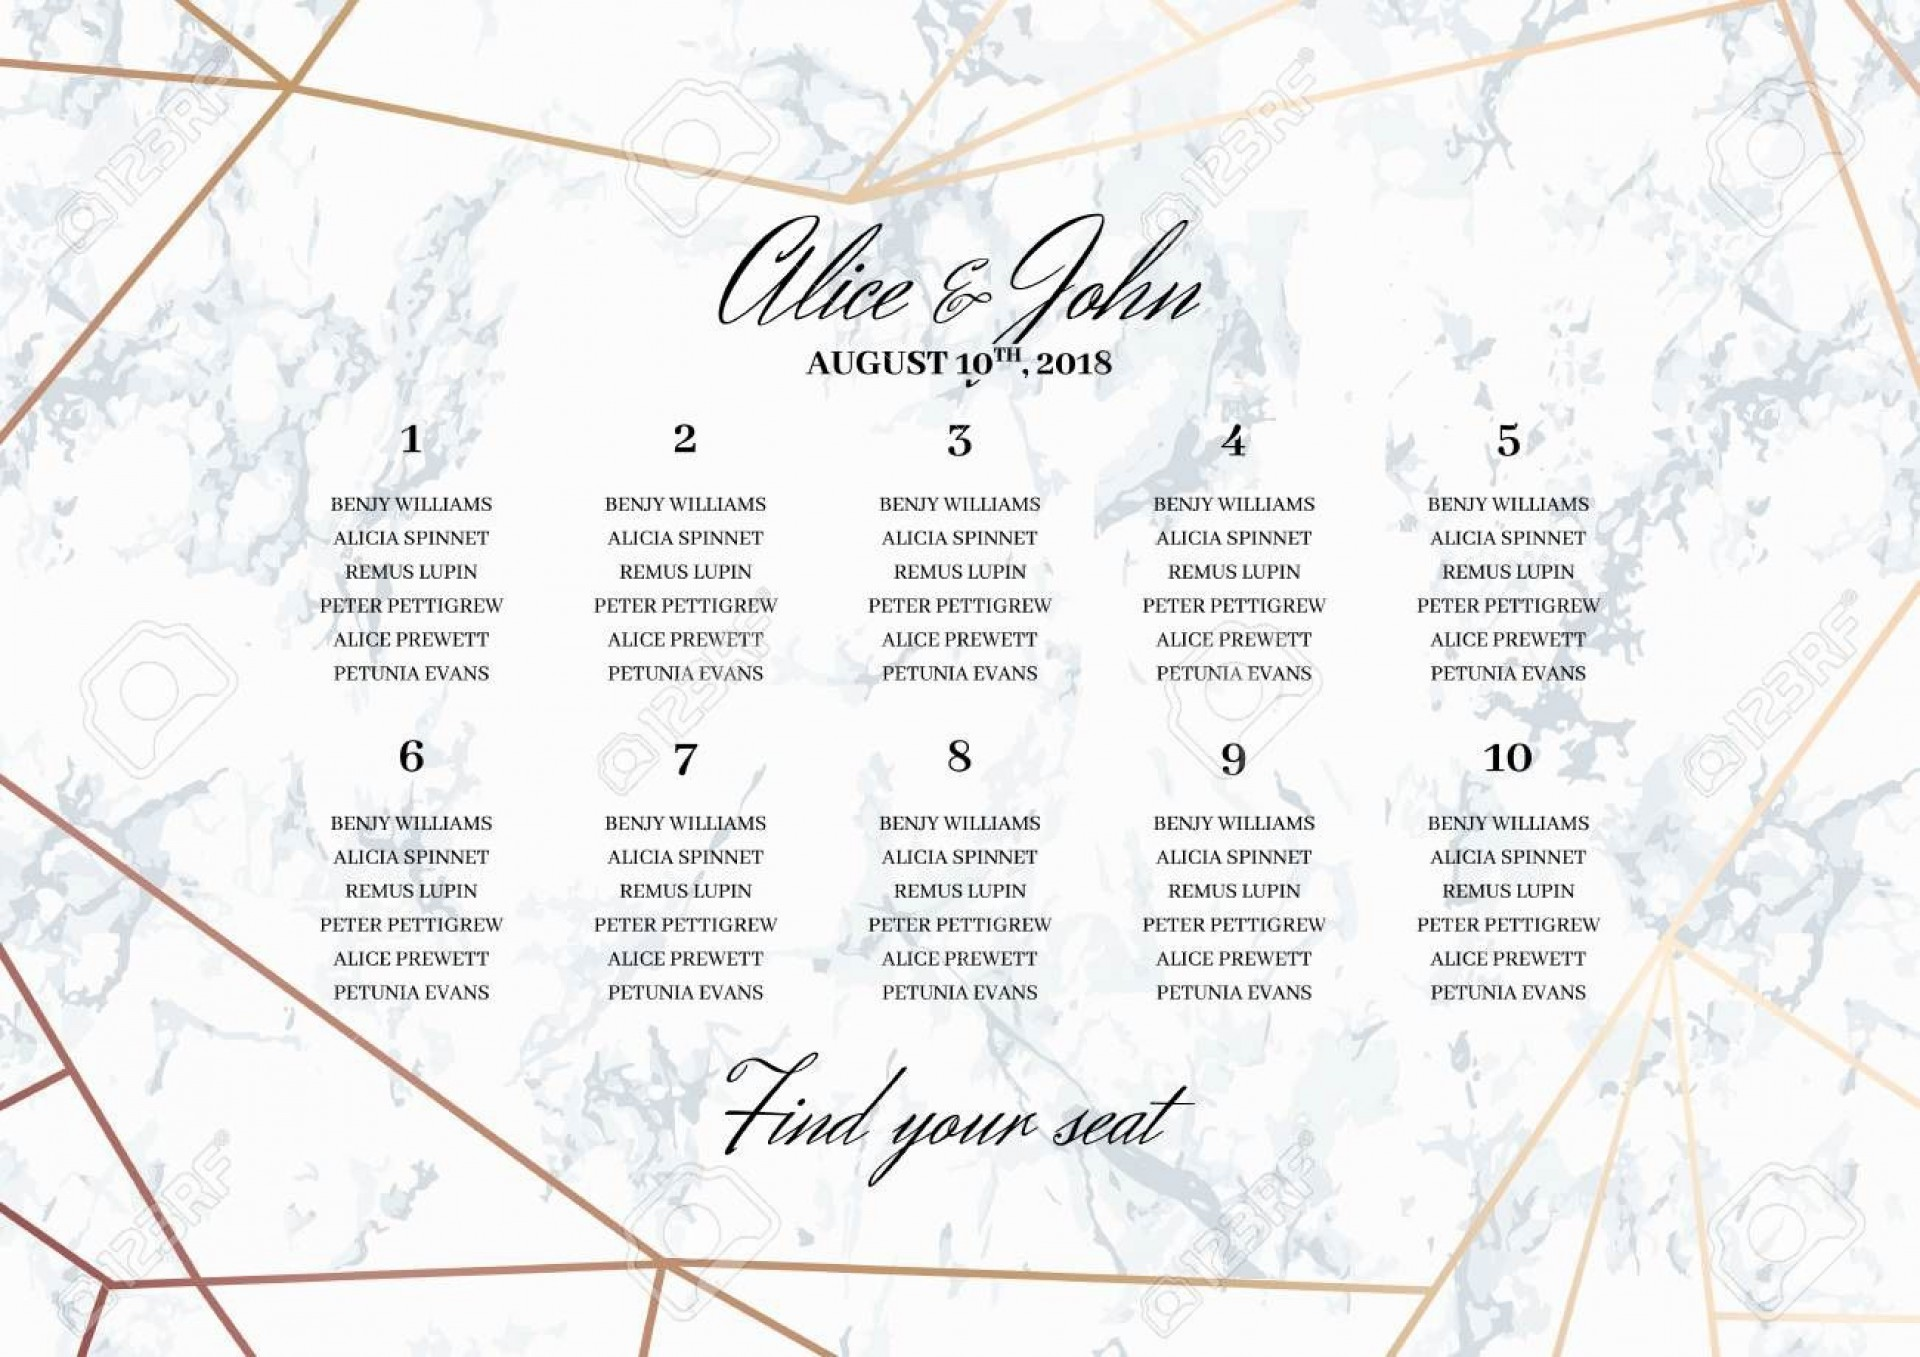 002 Remarkable Wedding Seating Chart Template Design  Templates Plan Excel Word Microsoft1920